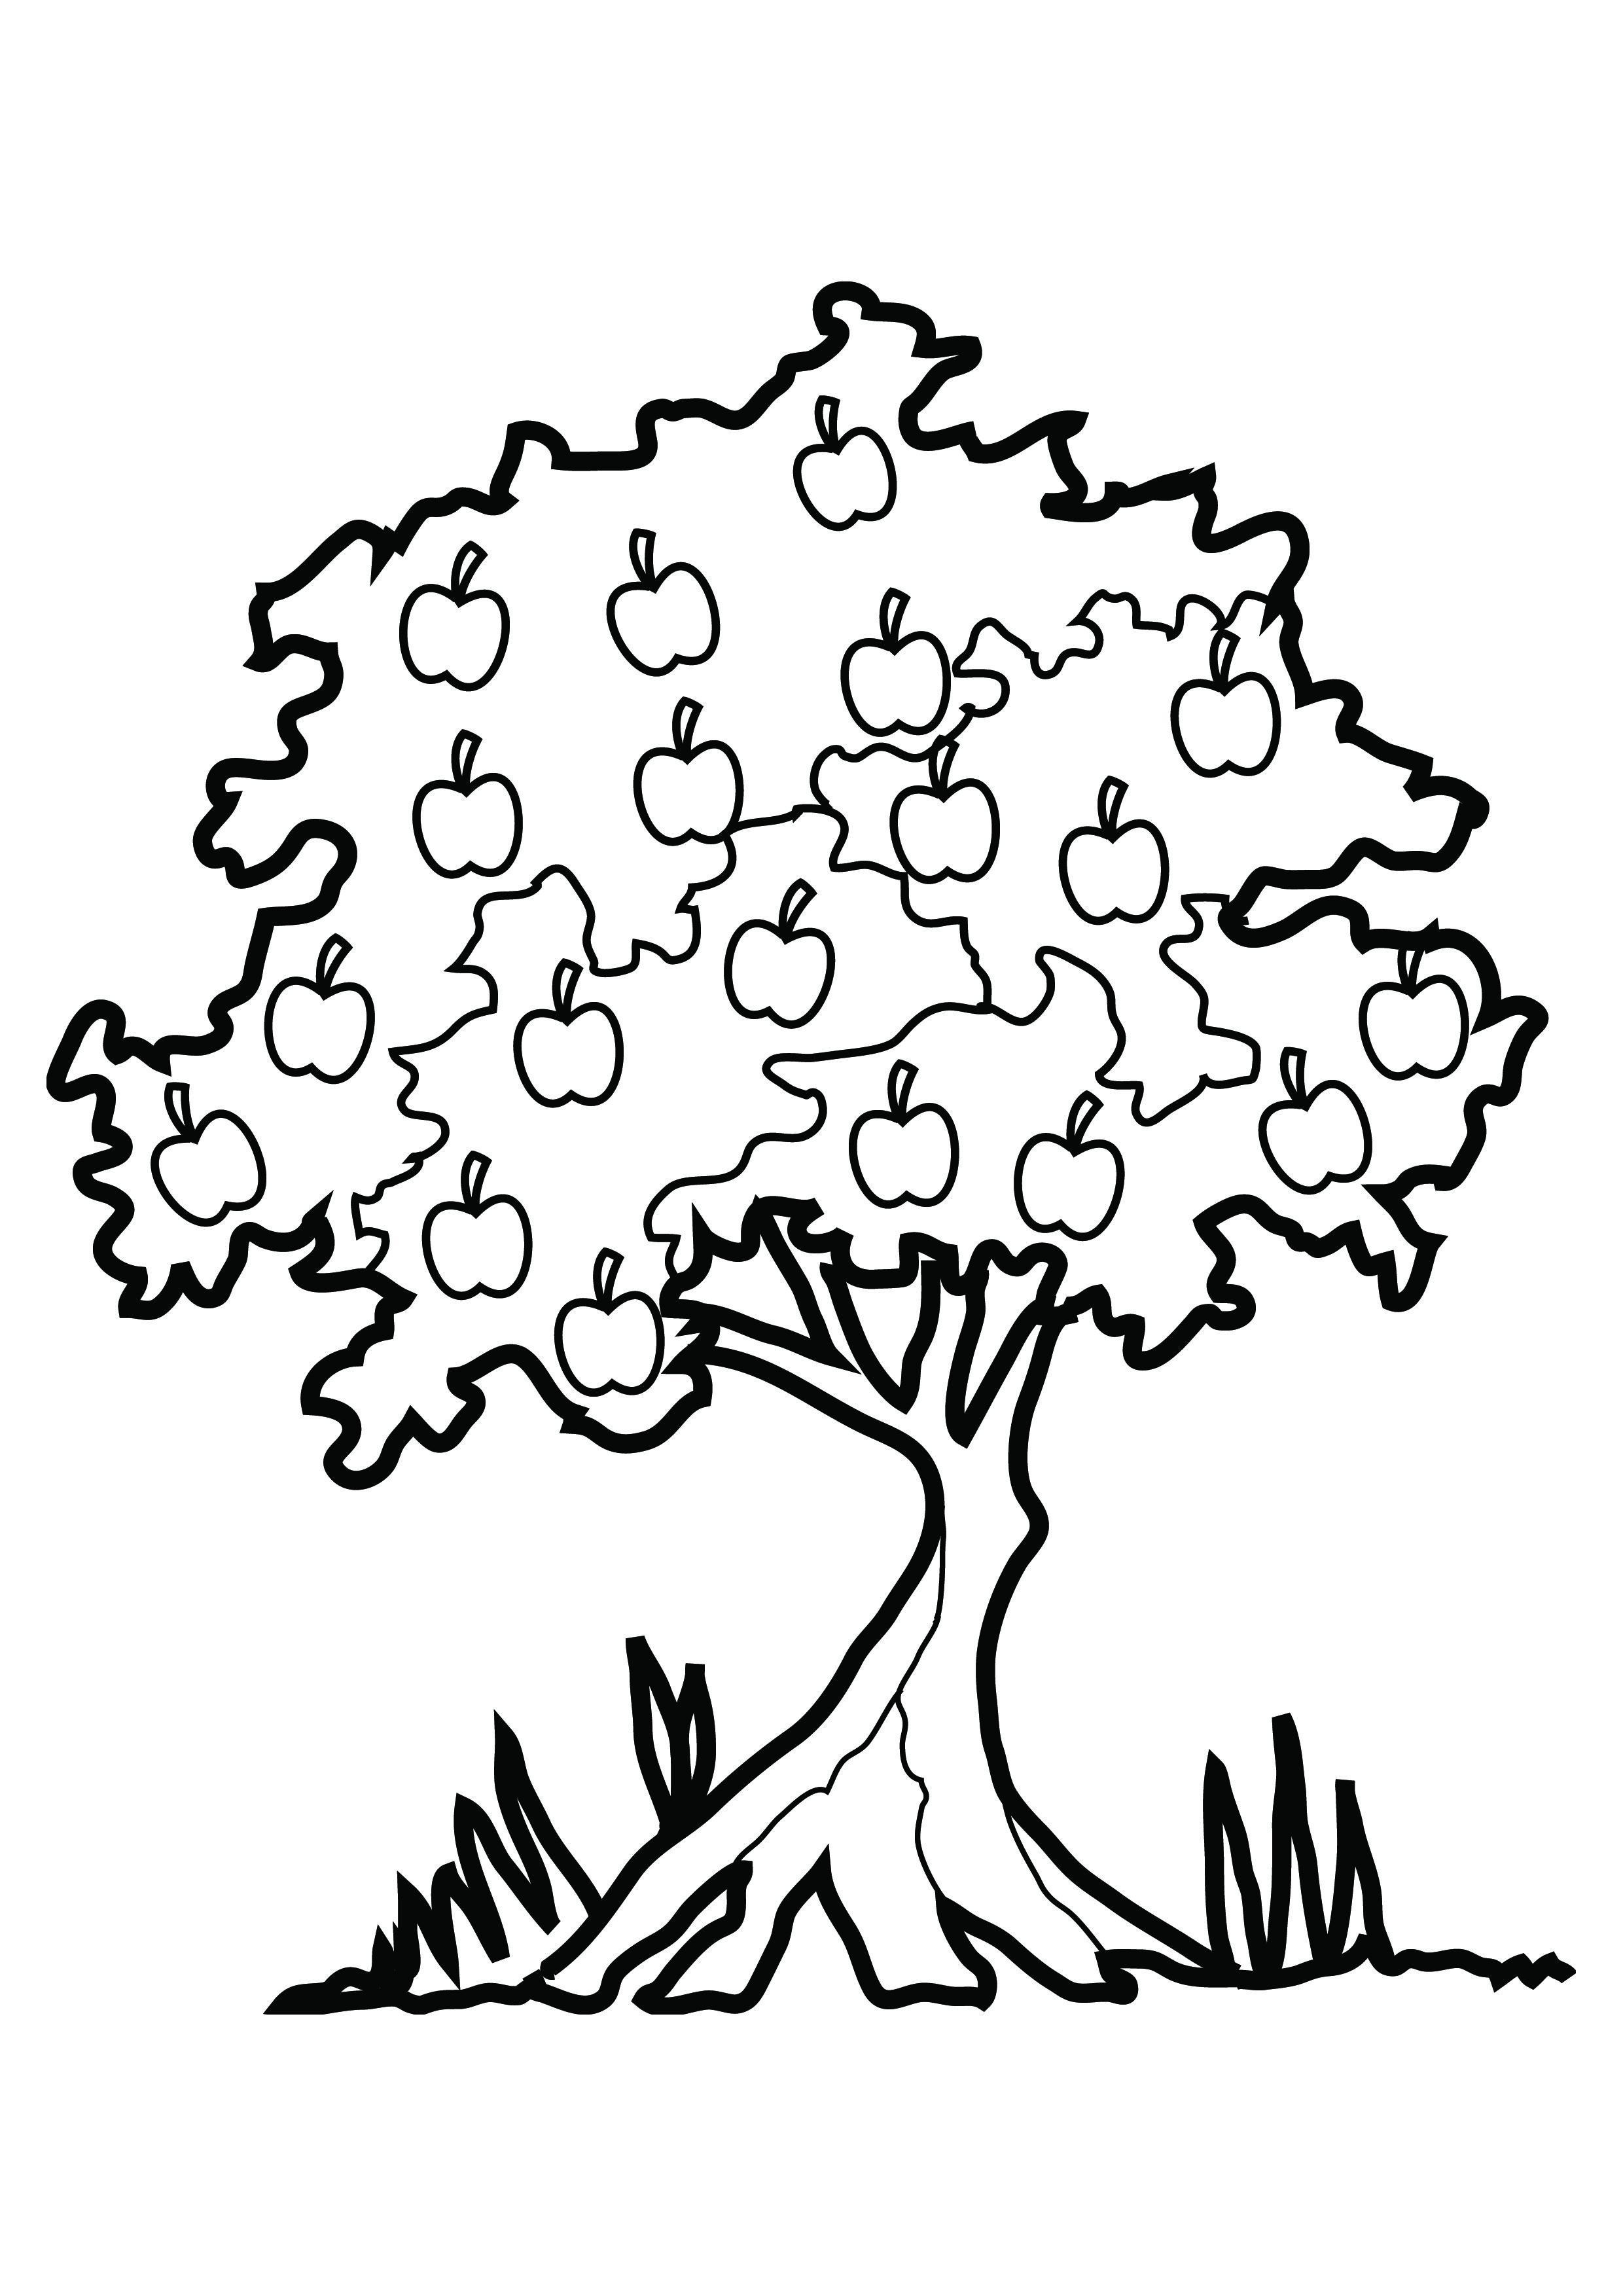 apple tree coloring page - tree coloring pages